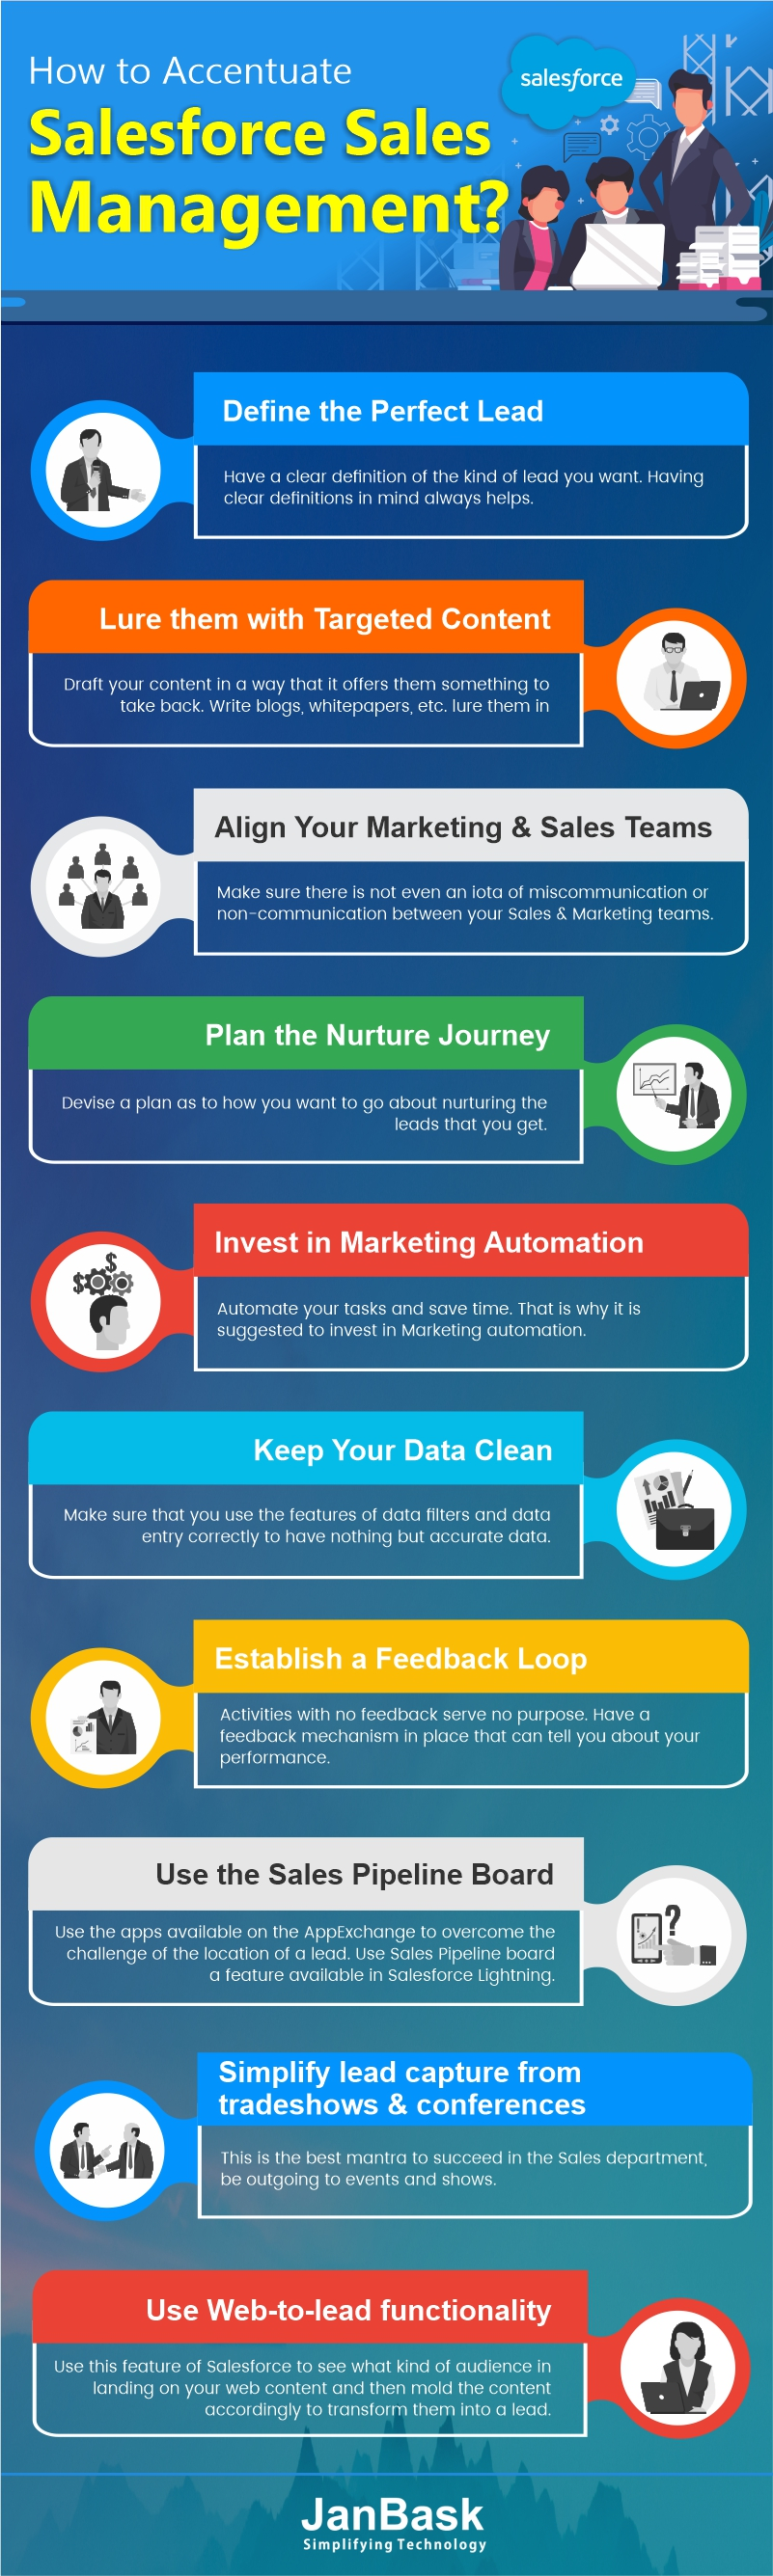 Infographic How to Accentuate Salesforce Sales Management?